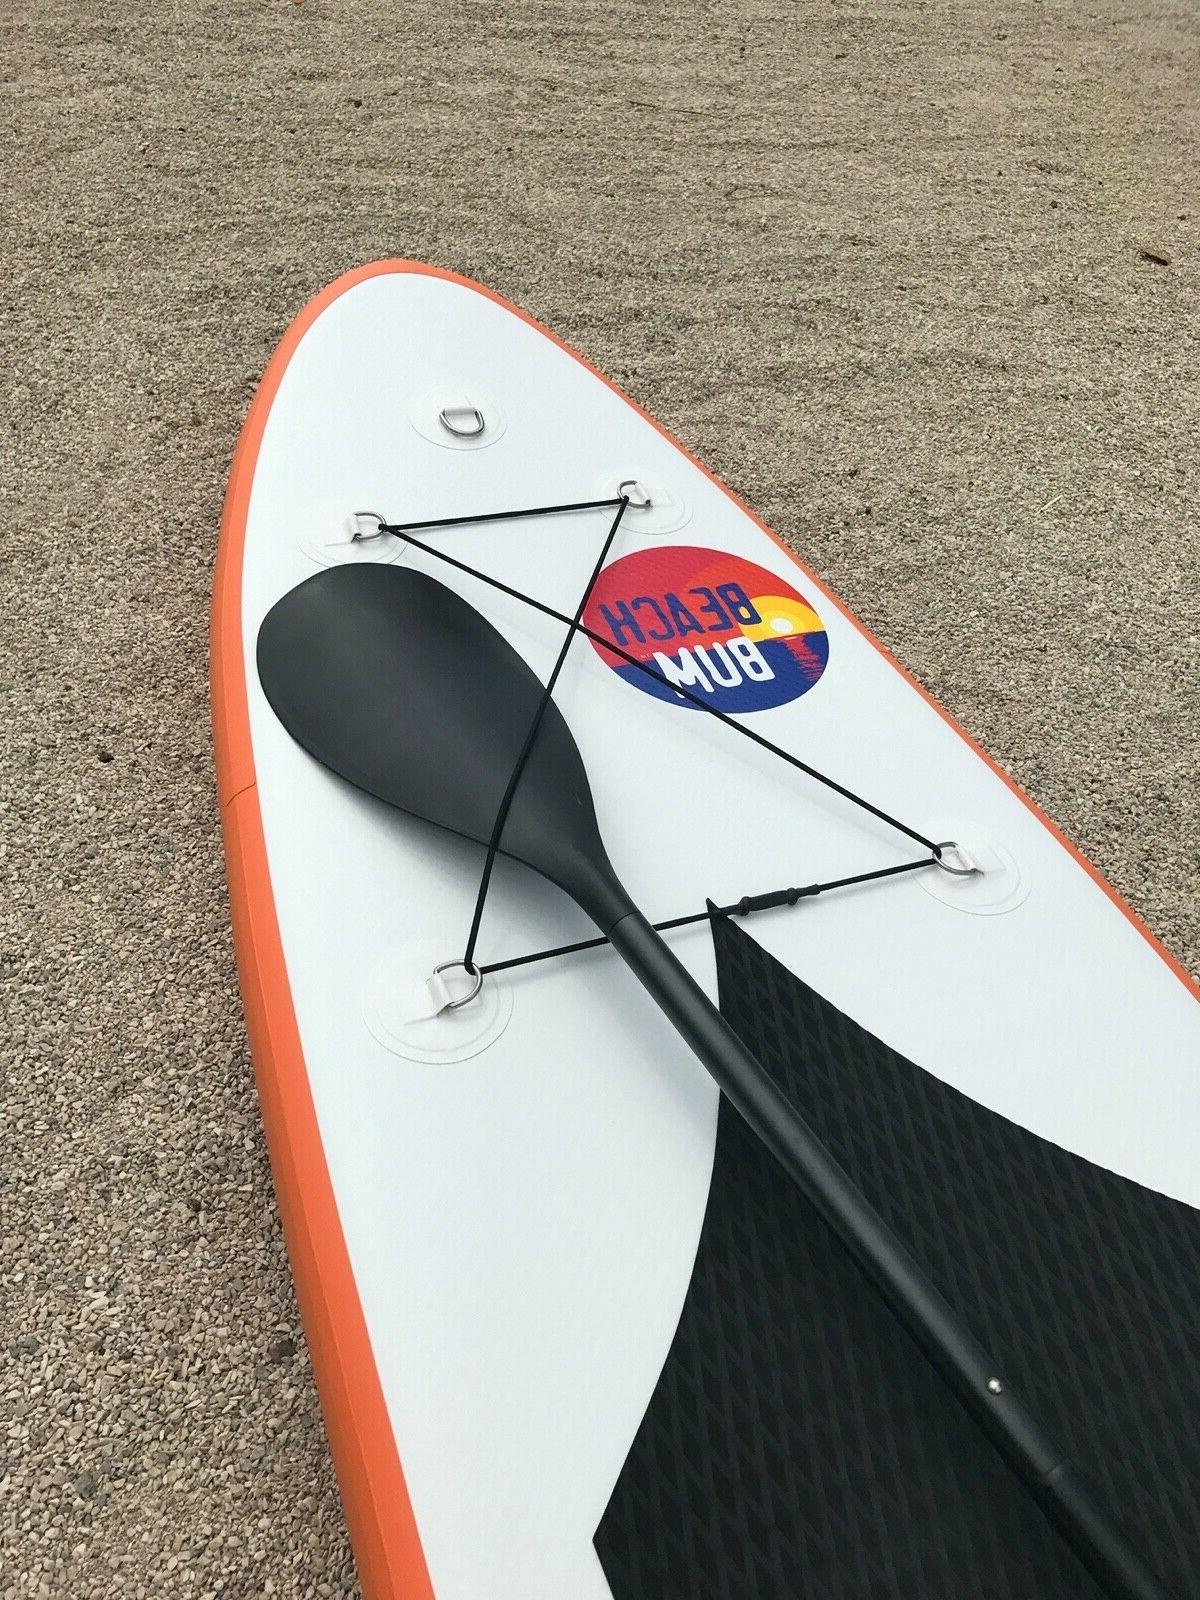 Beach SPK2 10' 10'' Inflatable Up Board Paddle